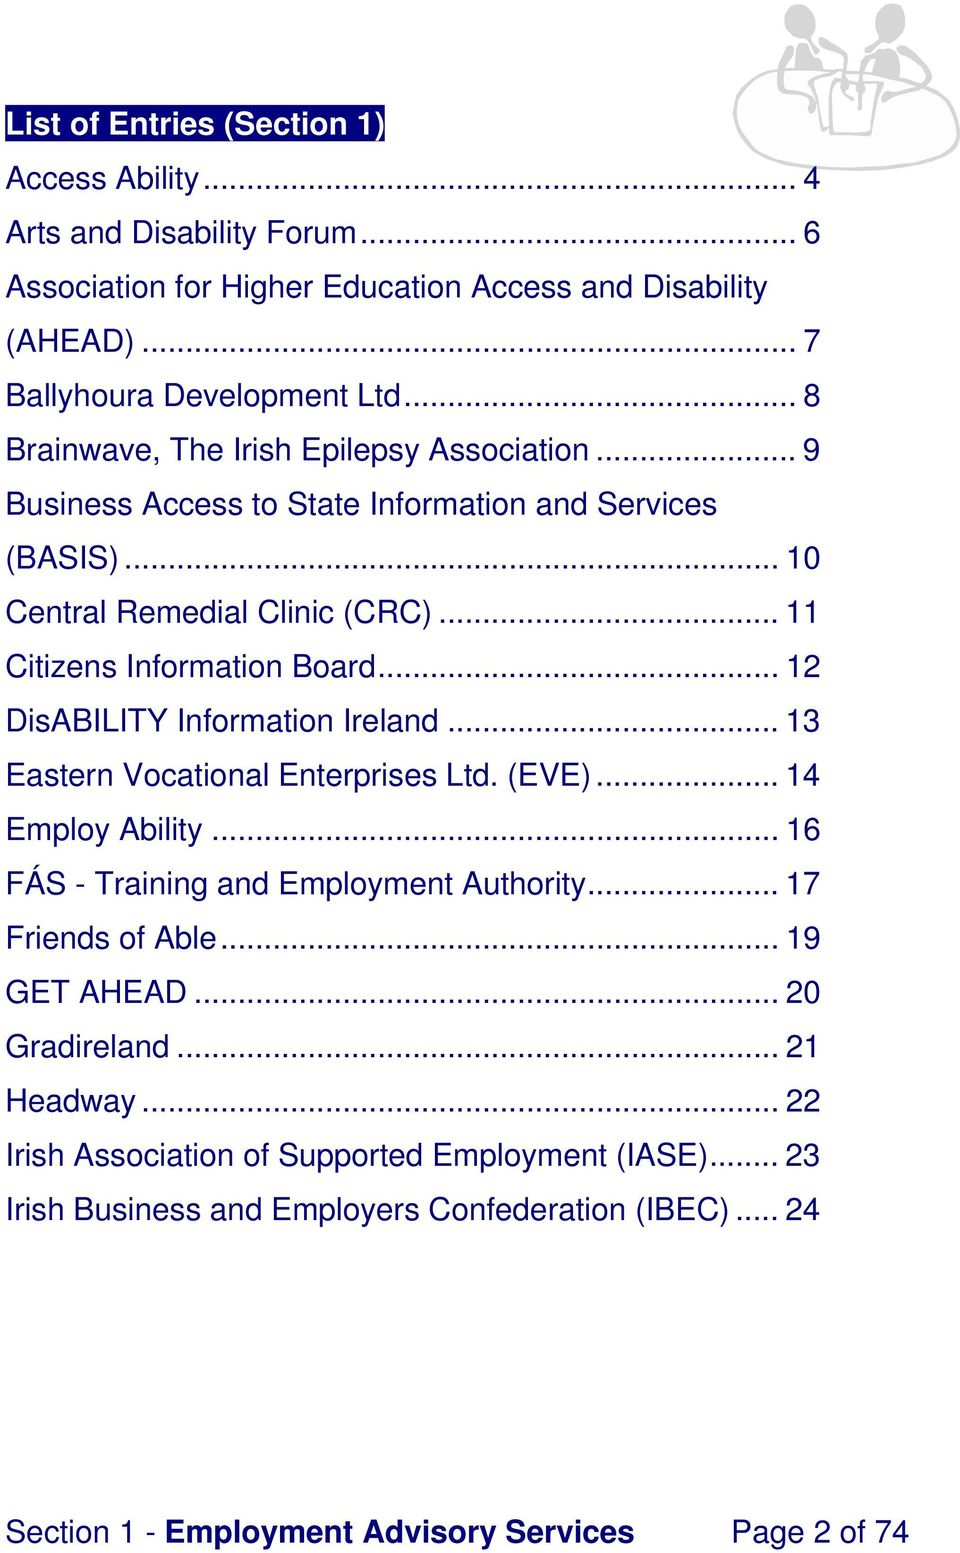 .. 12 DisABILITY Information Ireland... 13 Eastern Vocational Enterprises Ltd. (EVE)... 14 Employ Ability... 16 FÁS - Training and Employment Authority... 17 Friends of Able.